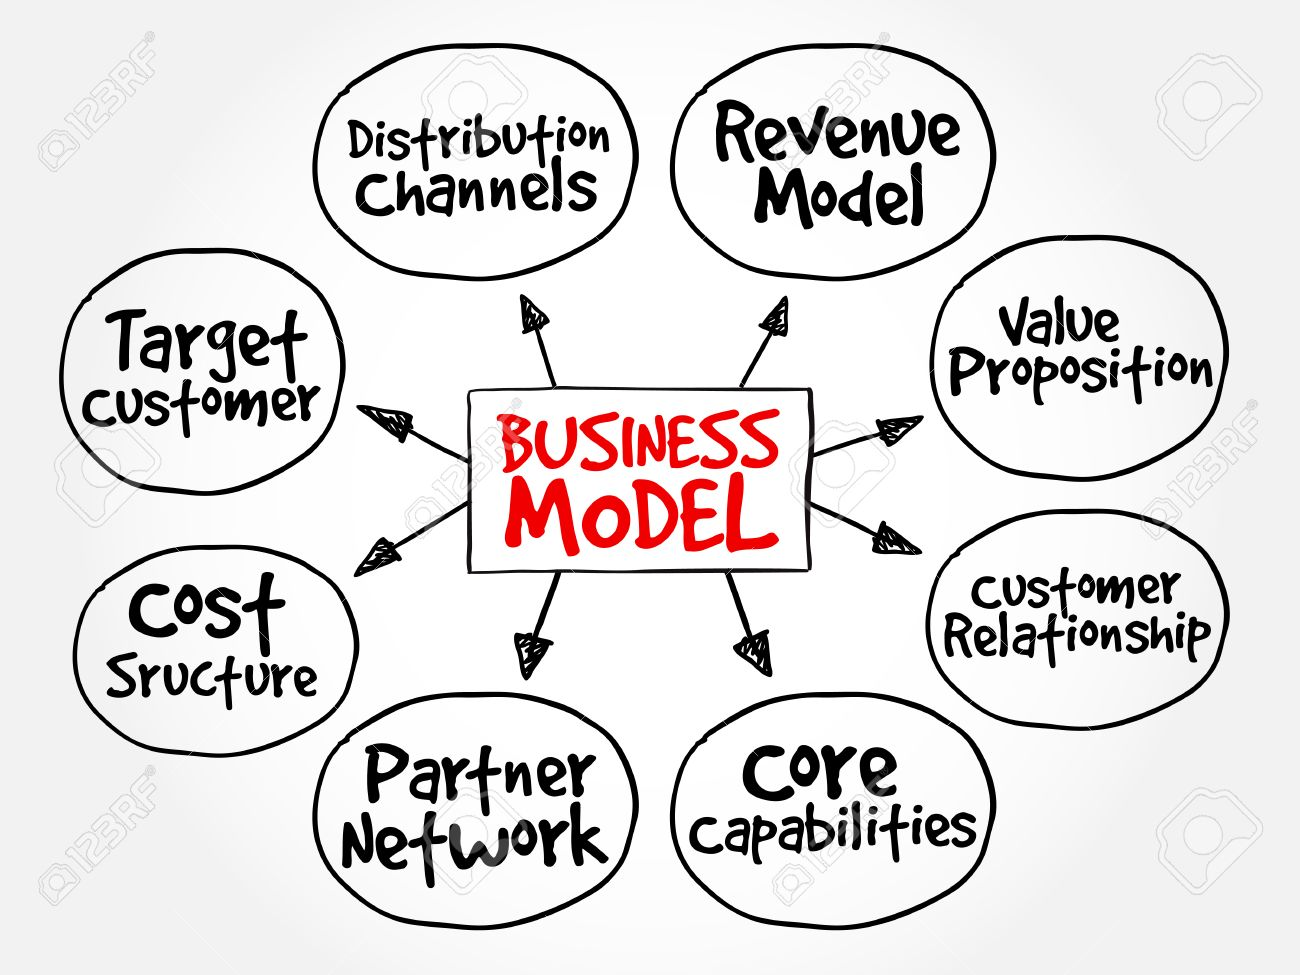 Business Model mind map flowchart business concept for presentations and reports - 57872317